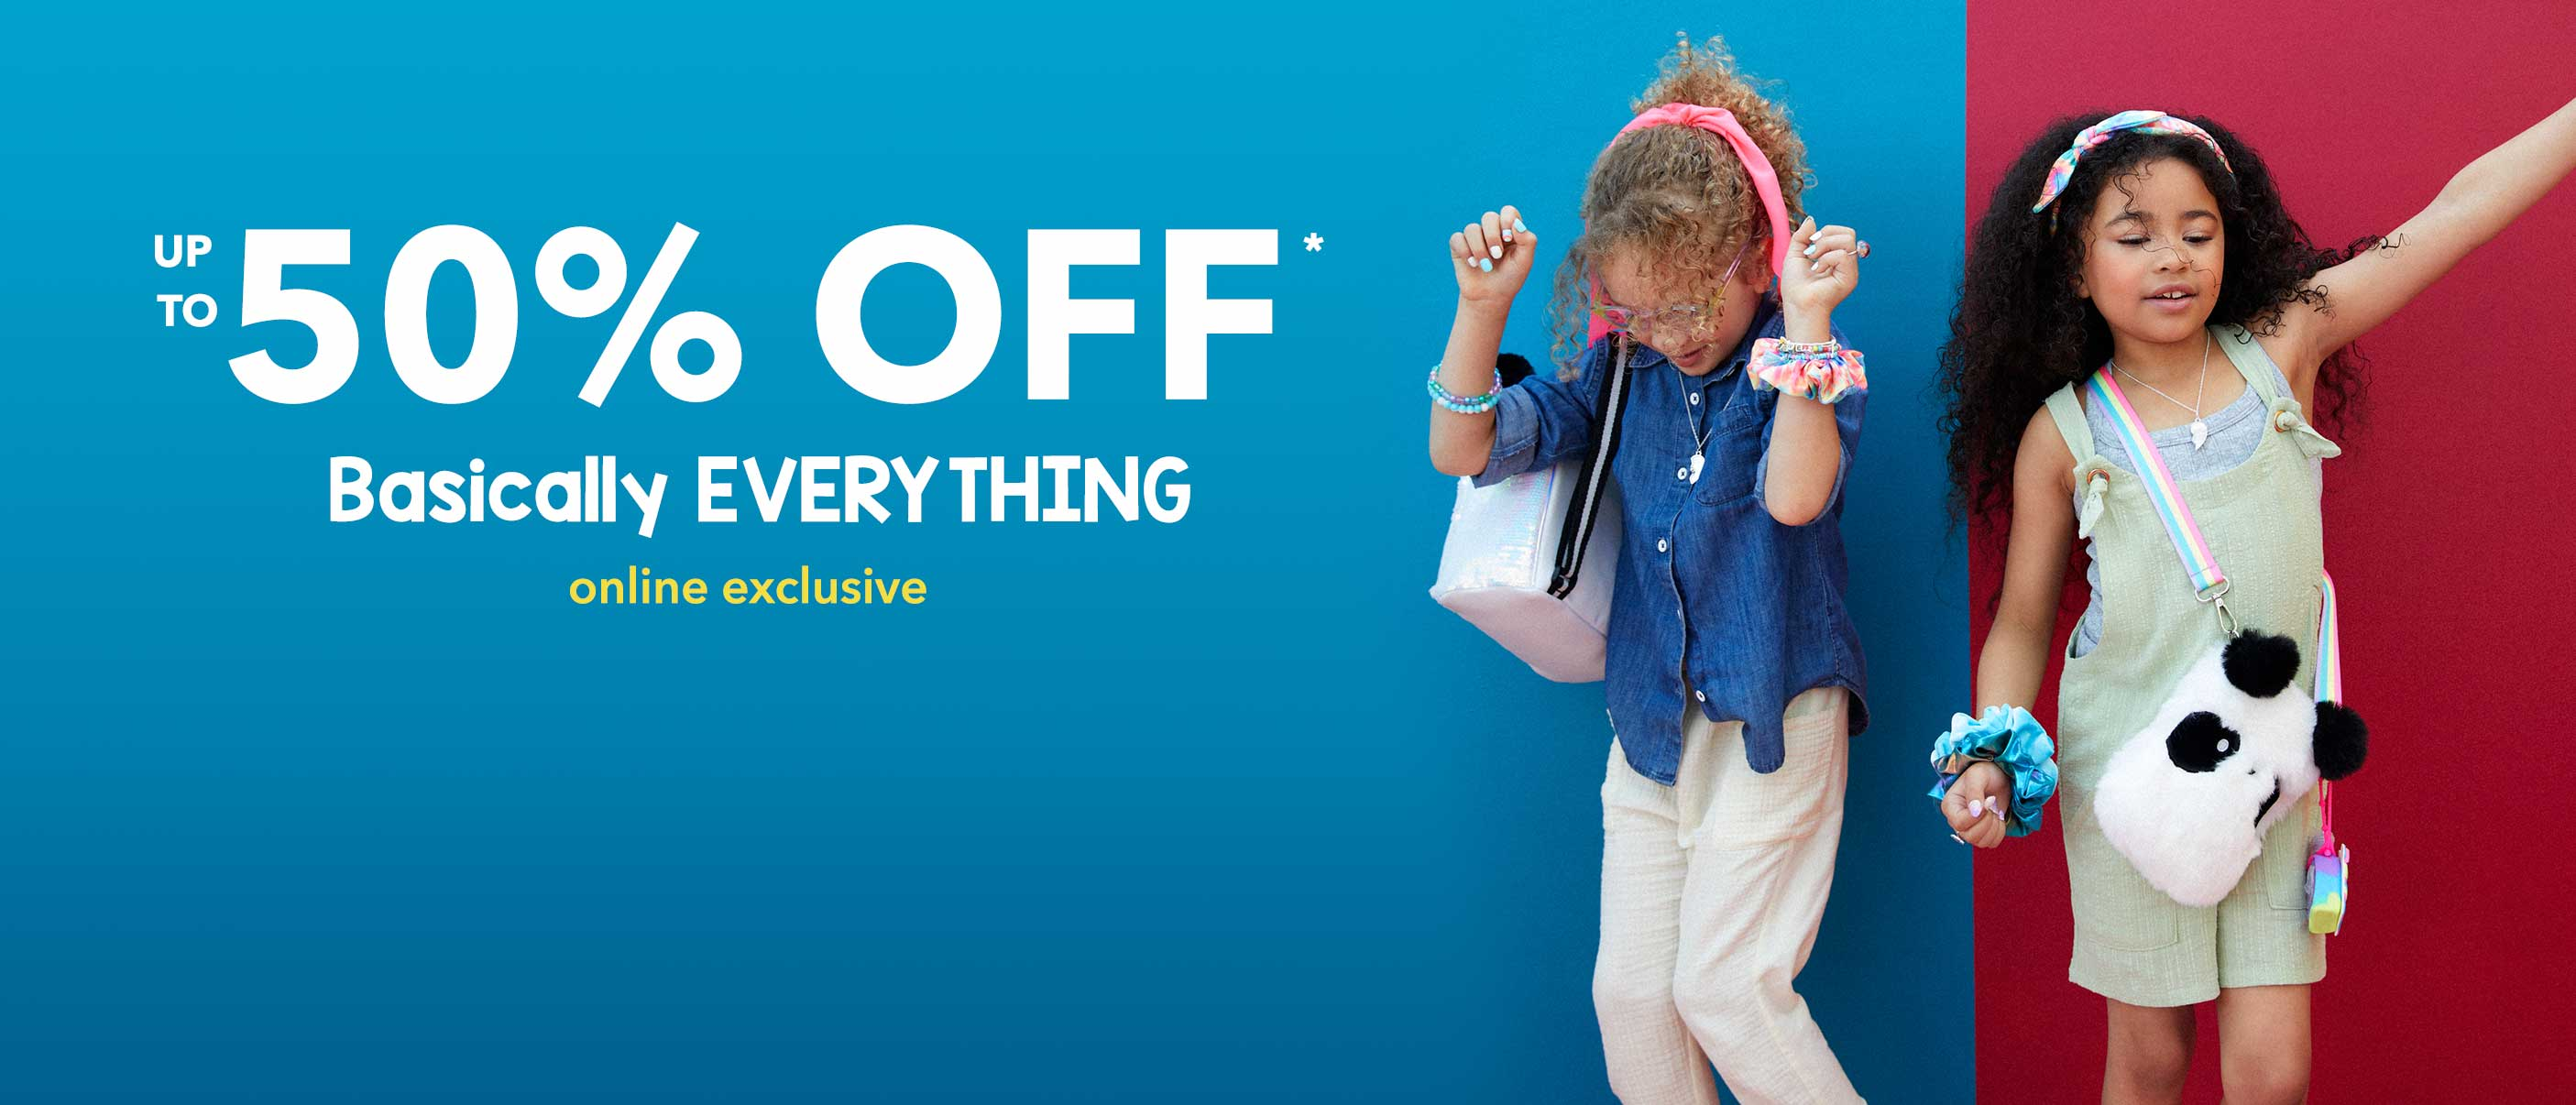 Up to 50% off  online exclusive